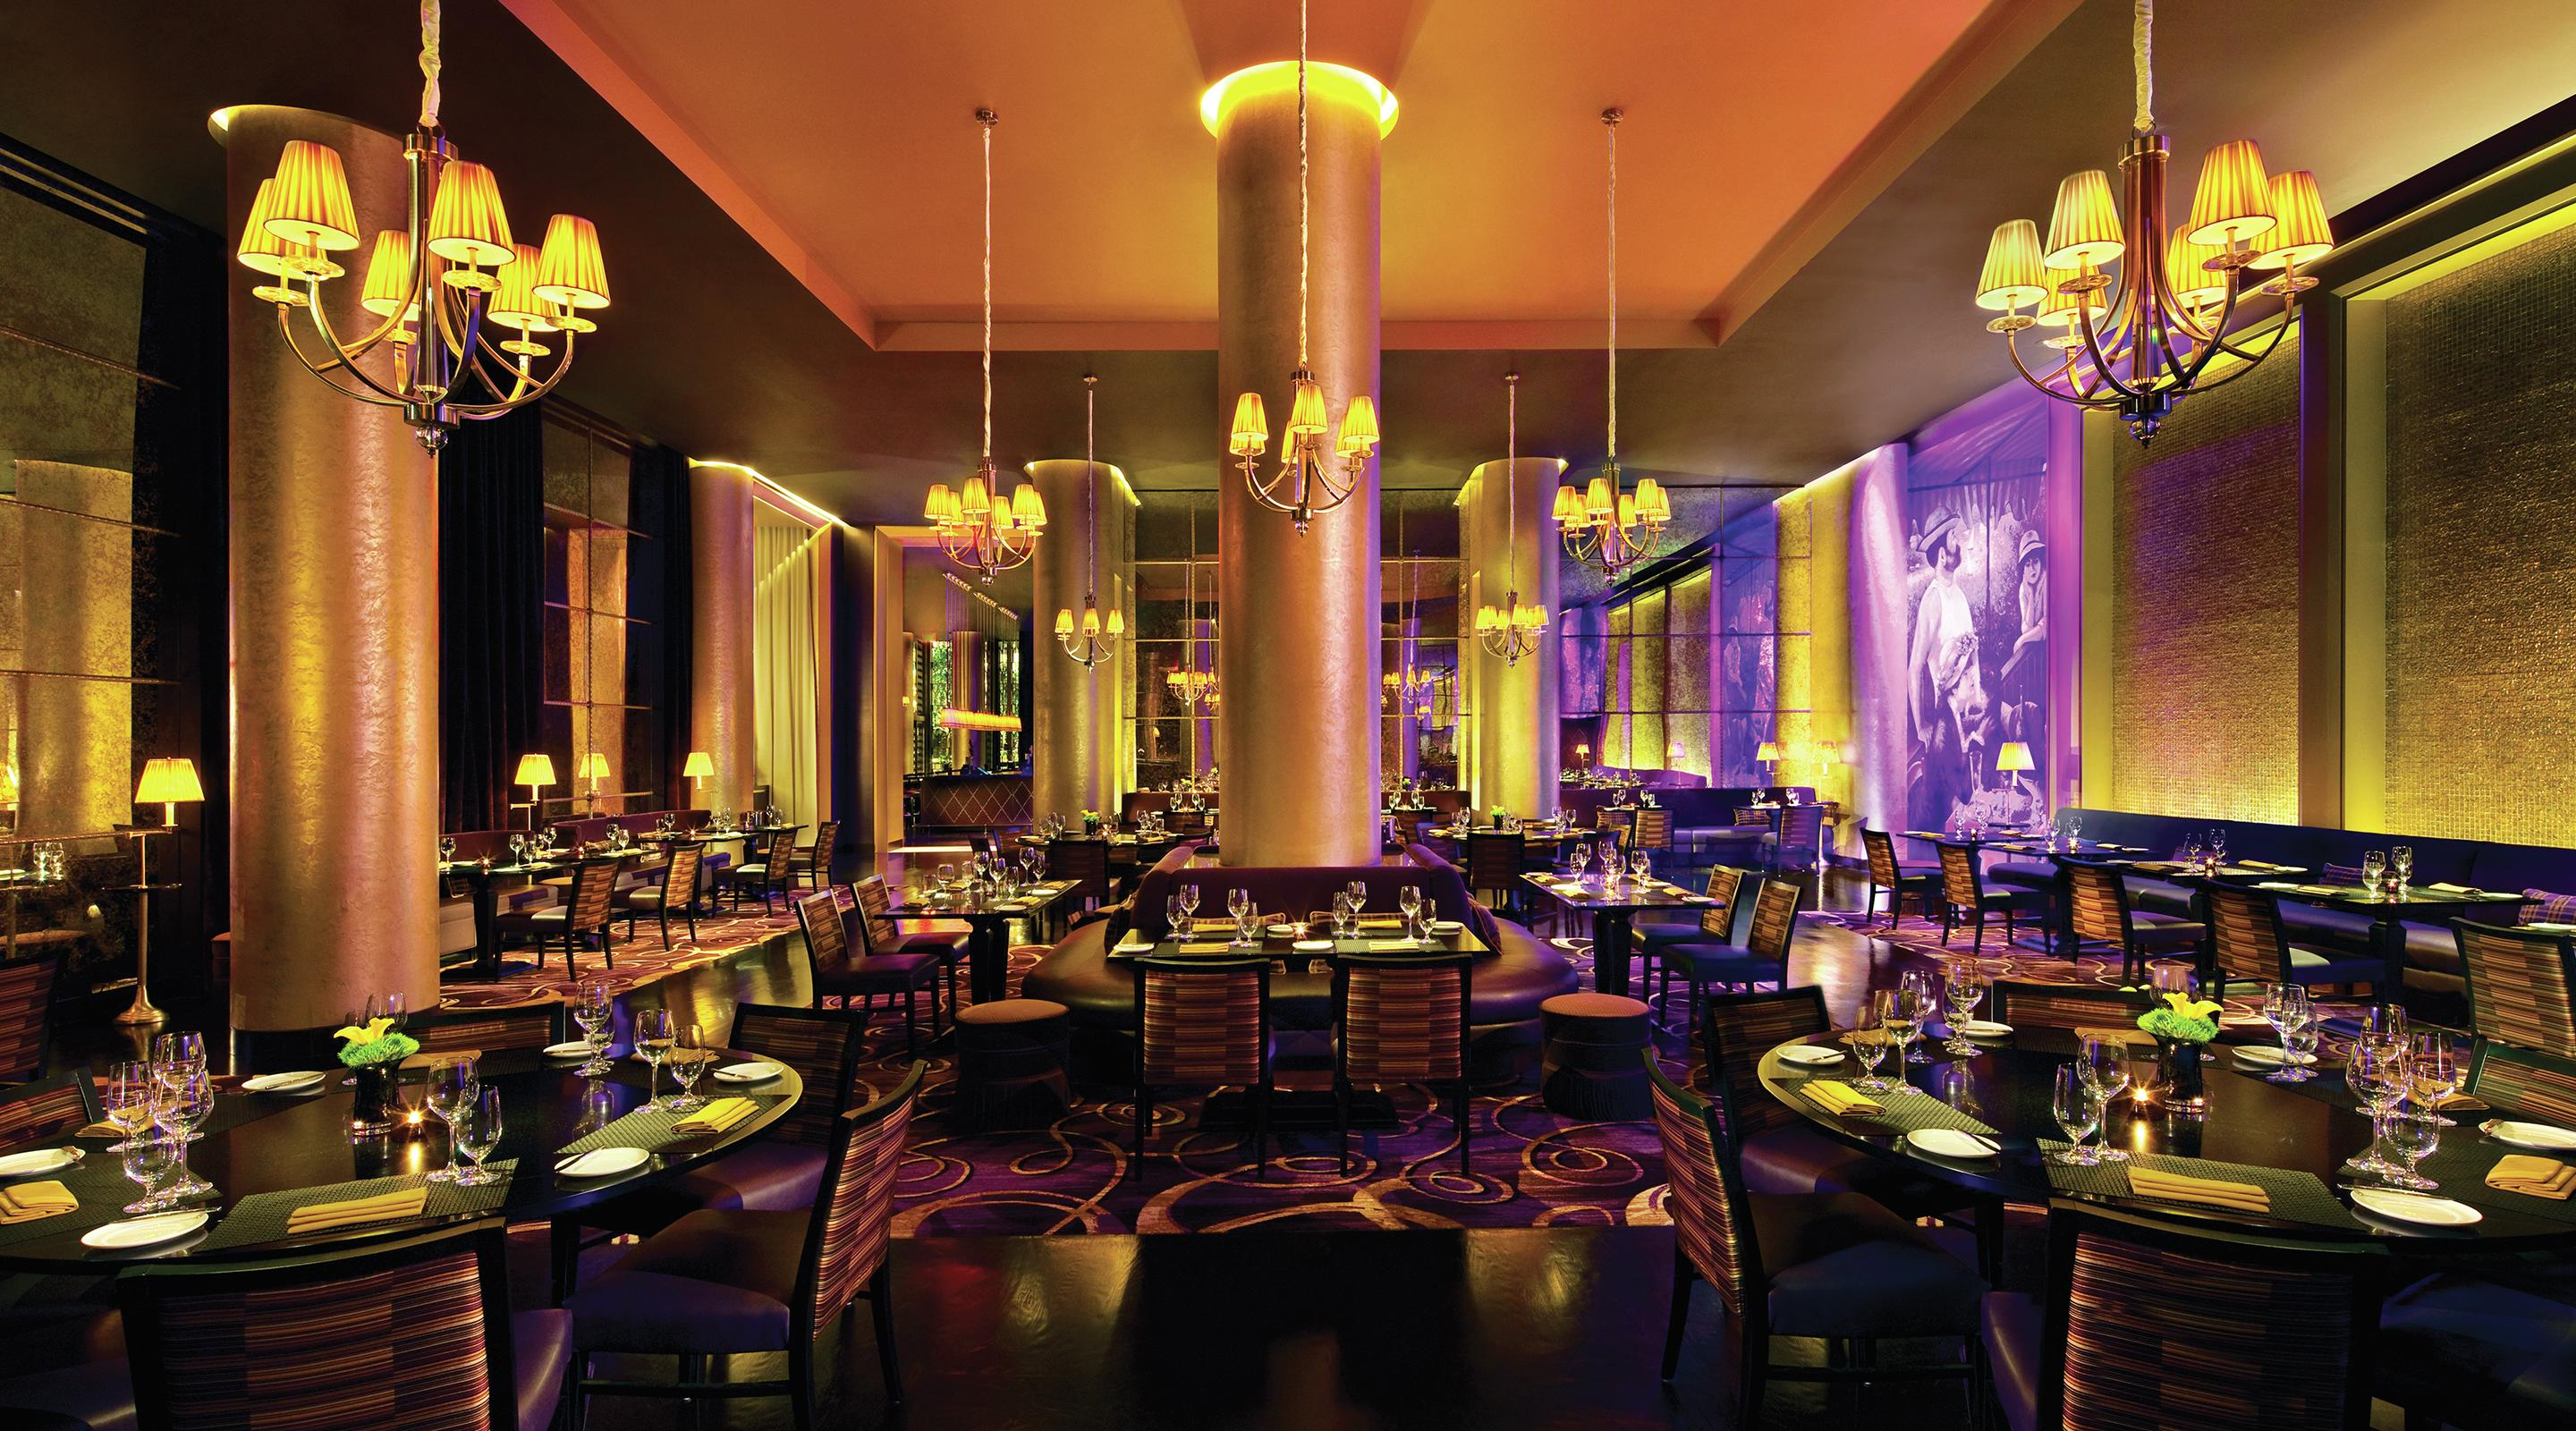 Sage is a favorite Las Vegas restaurant amongst an international crowd of foodies due to its focuses on contemporary American cuisine spiced with global influences in a sophisticated, yet comfortable atmosphere.